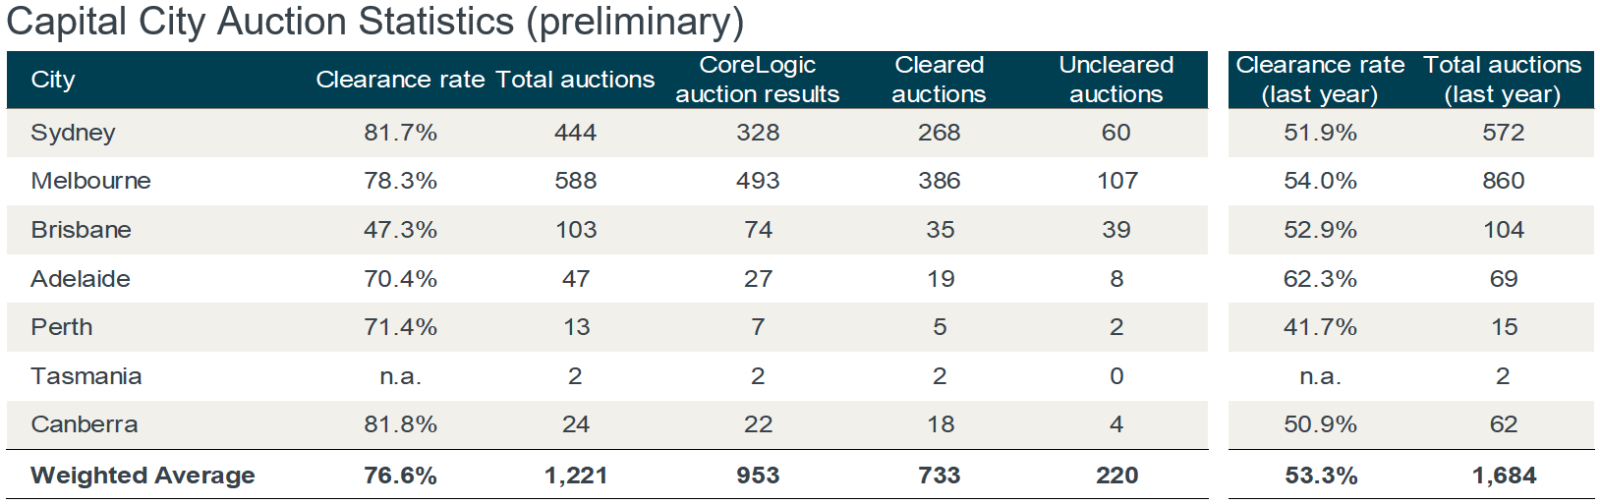 Preliminary auction results for August 19, 2019.